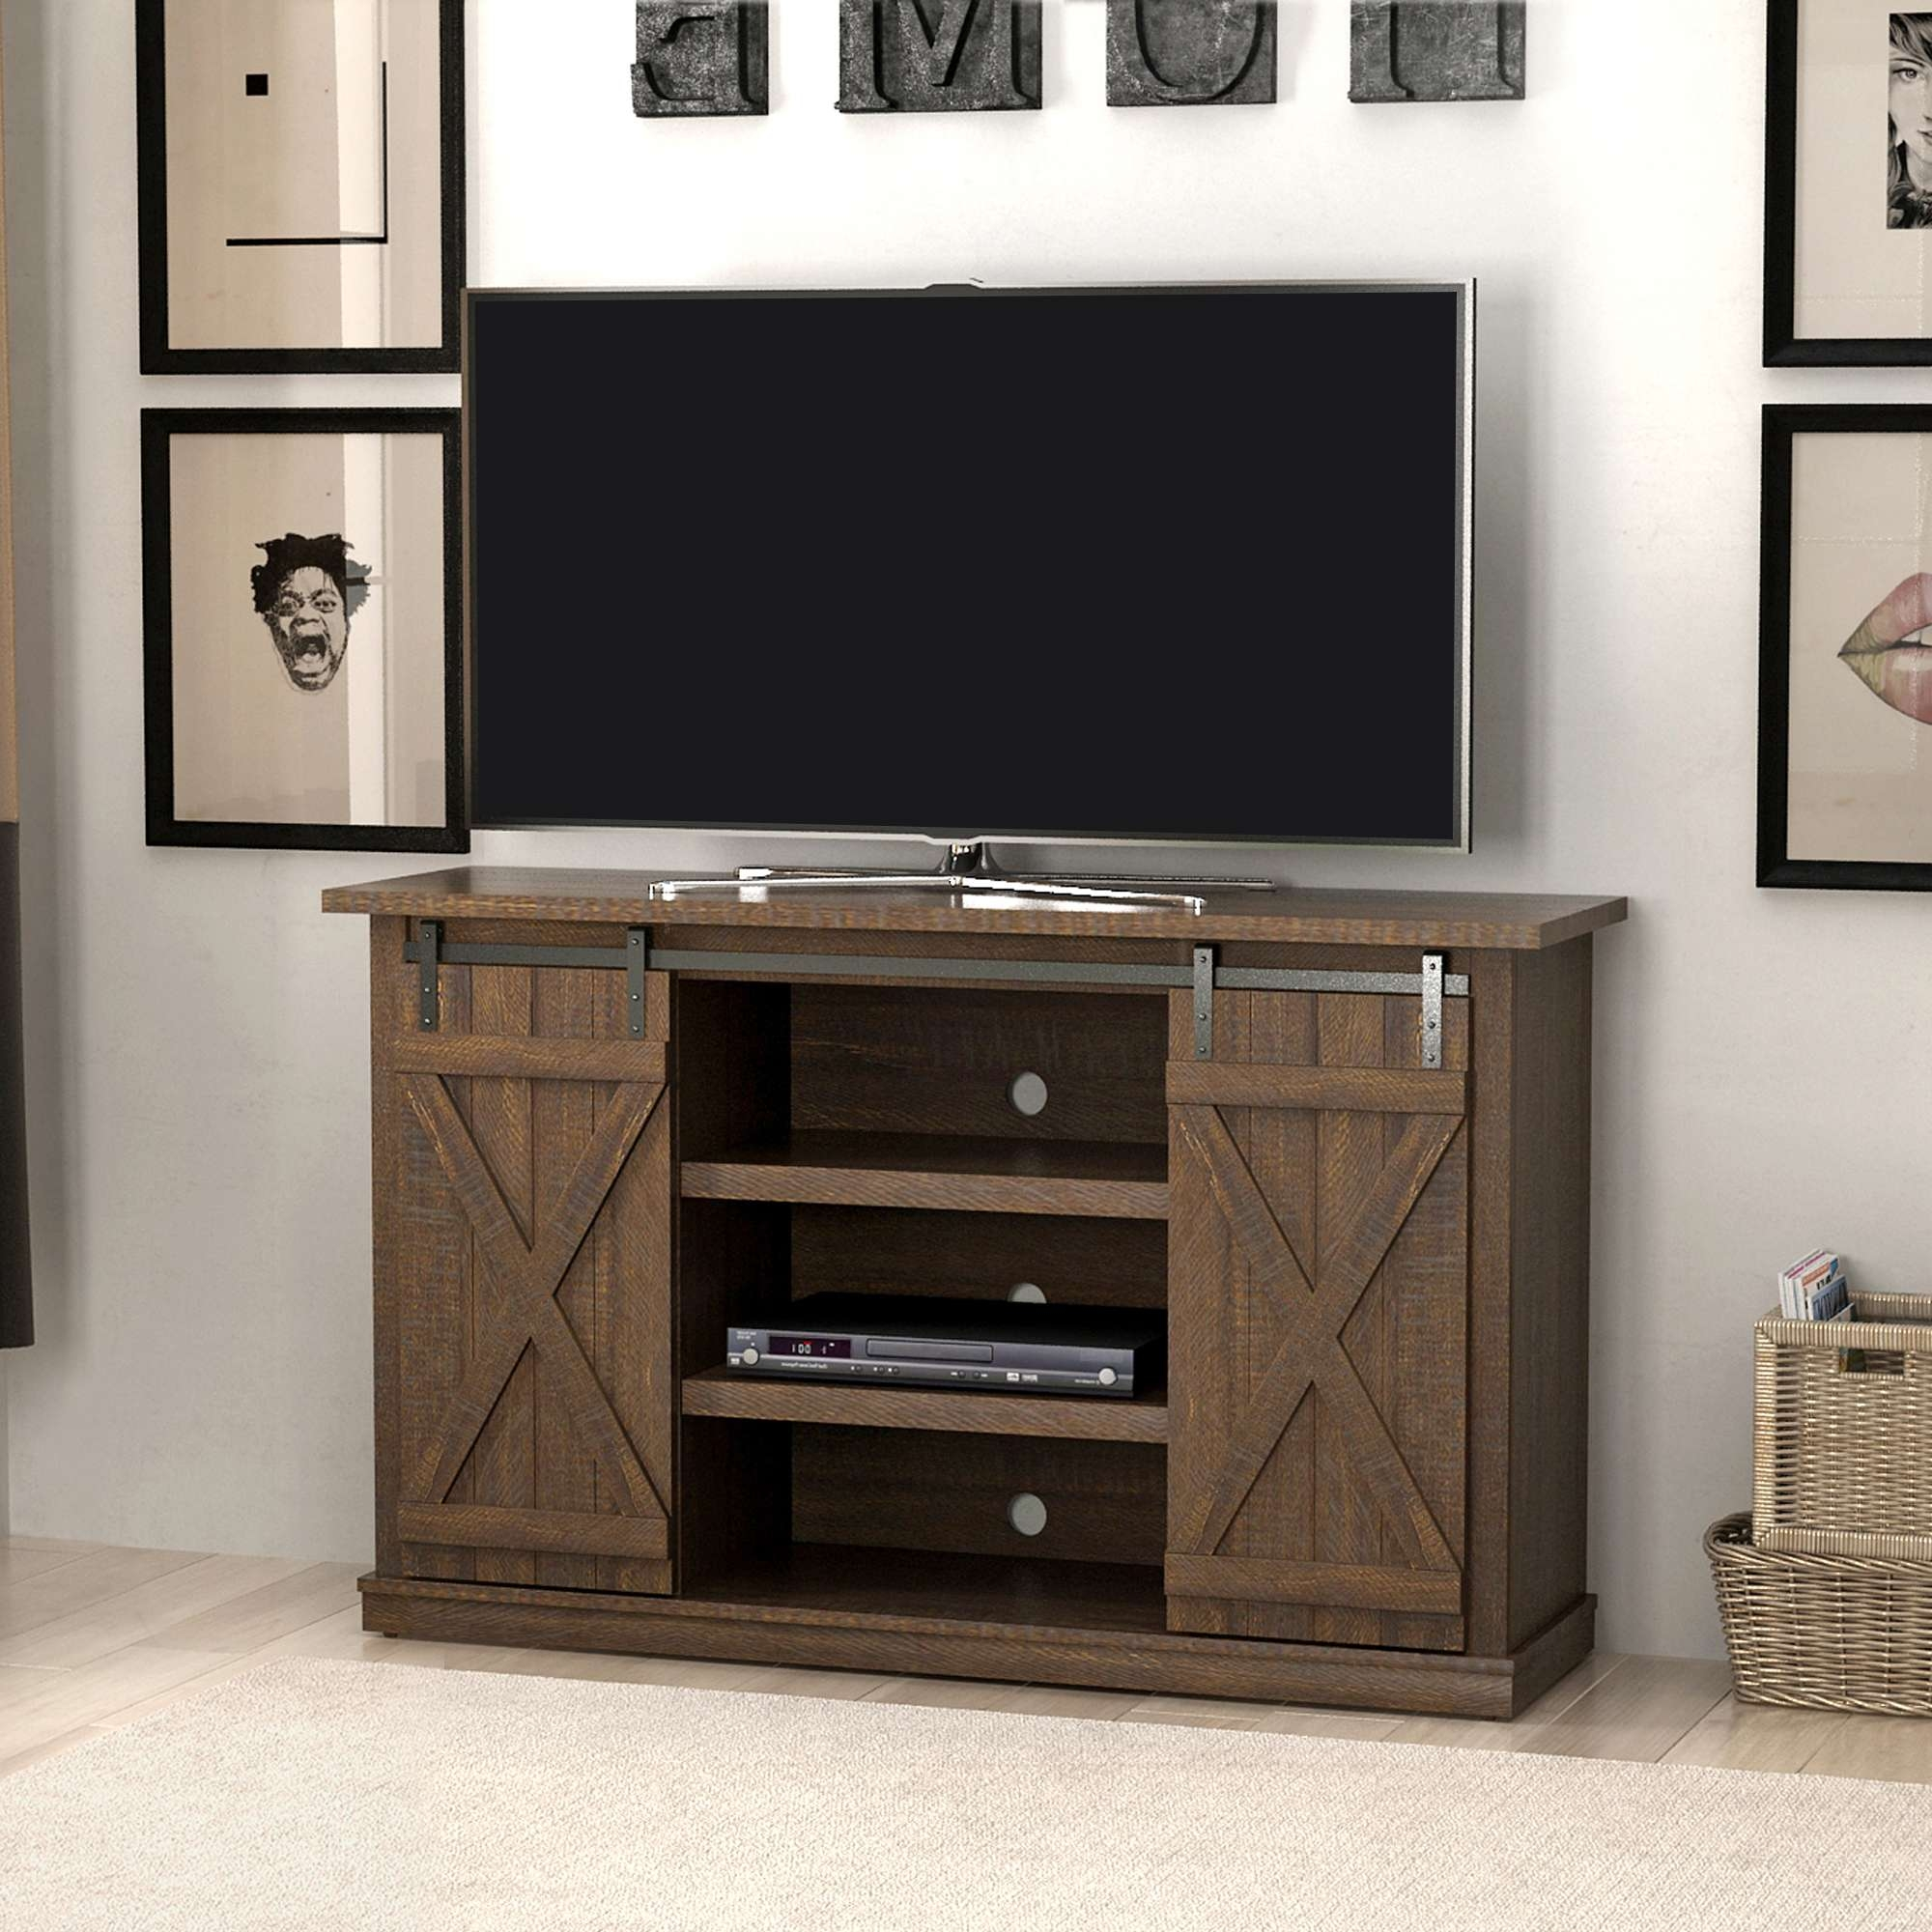 Tv Stands – Walmart Pertaining To Tv Stands For 55 Inch Tv (View 14 of 15)